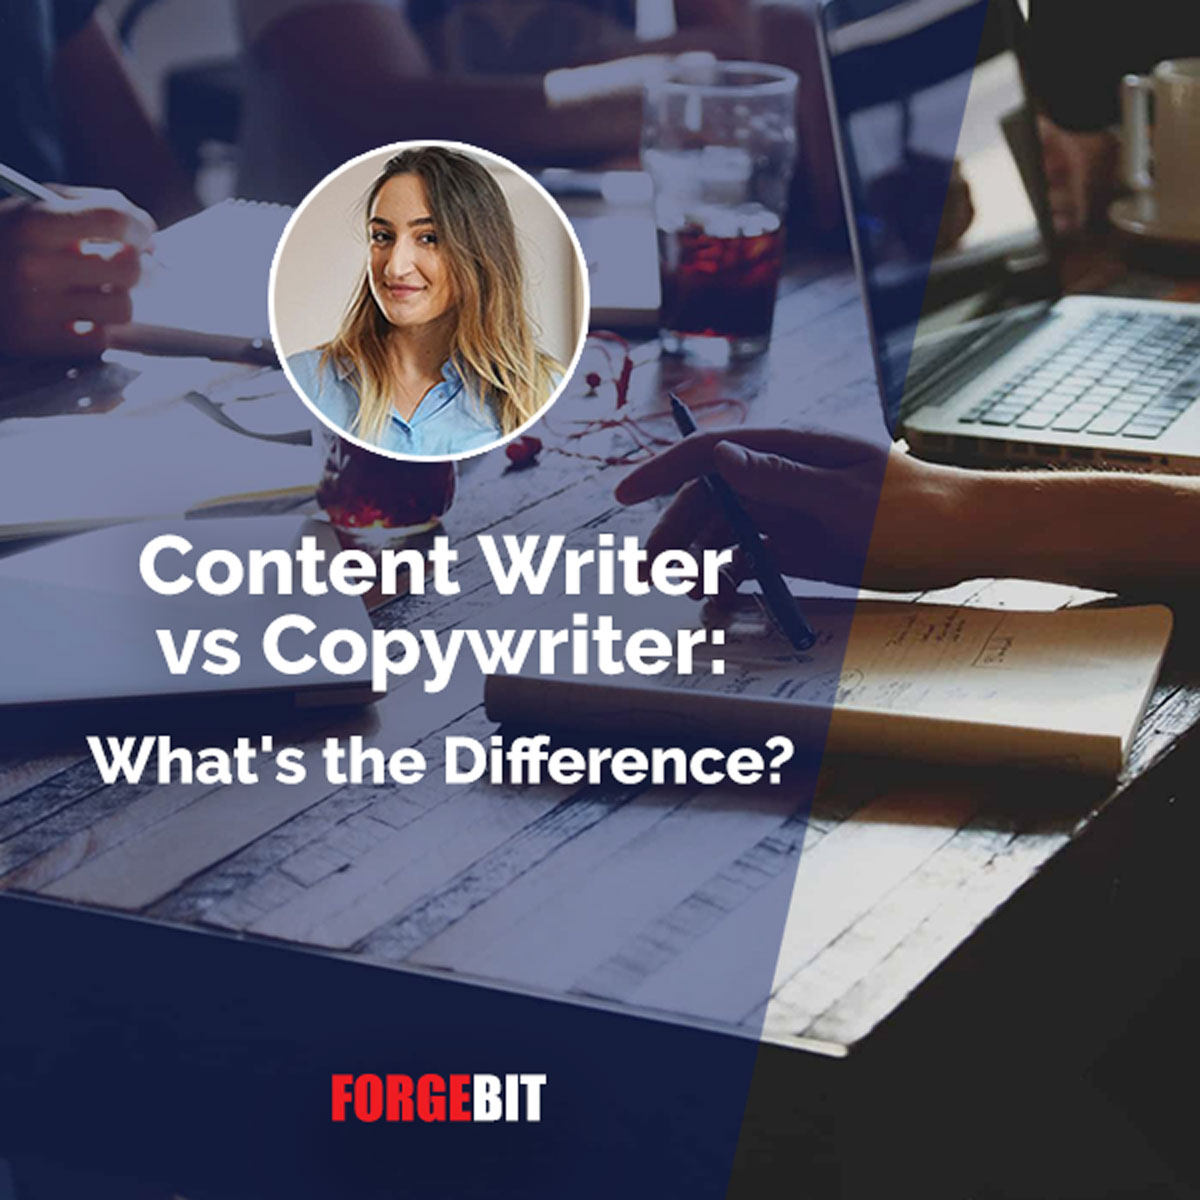 Content Writer vs. Copywriter – What Is the Difference?